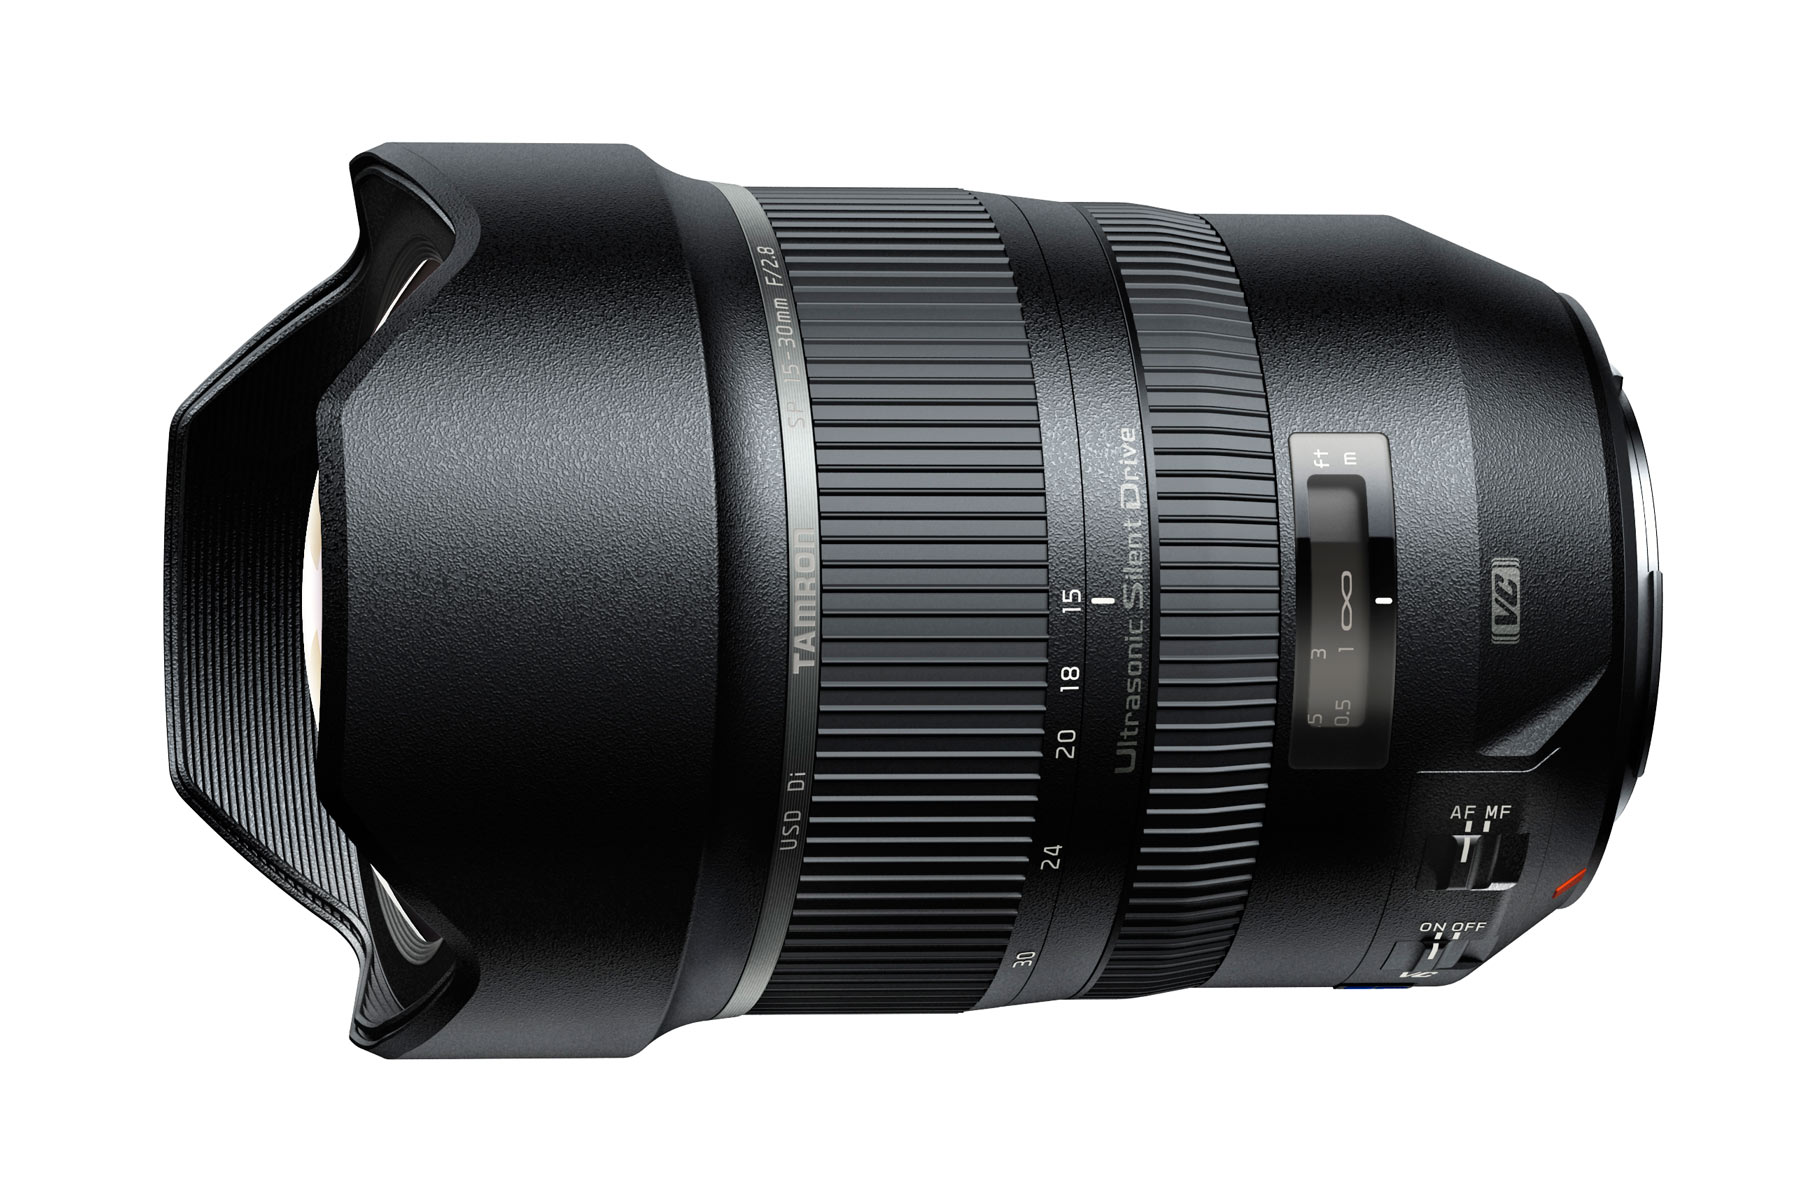 The Tamron SP 15-30mm F2.8 Di VC USD (model A012) is geared for full-frame shooters who appreciate a fast aperture and image stabilization.